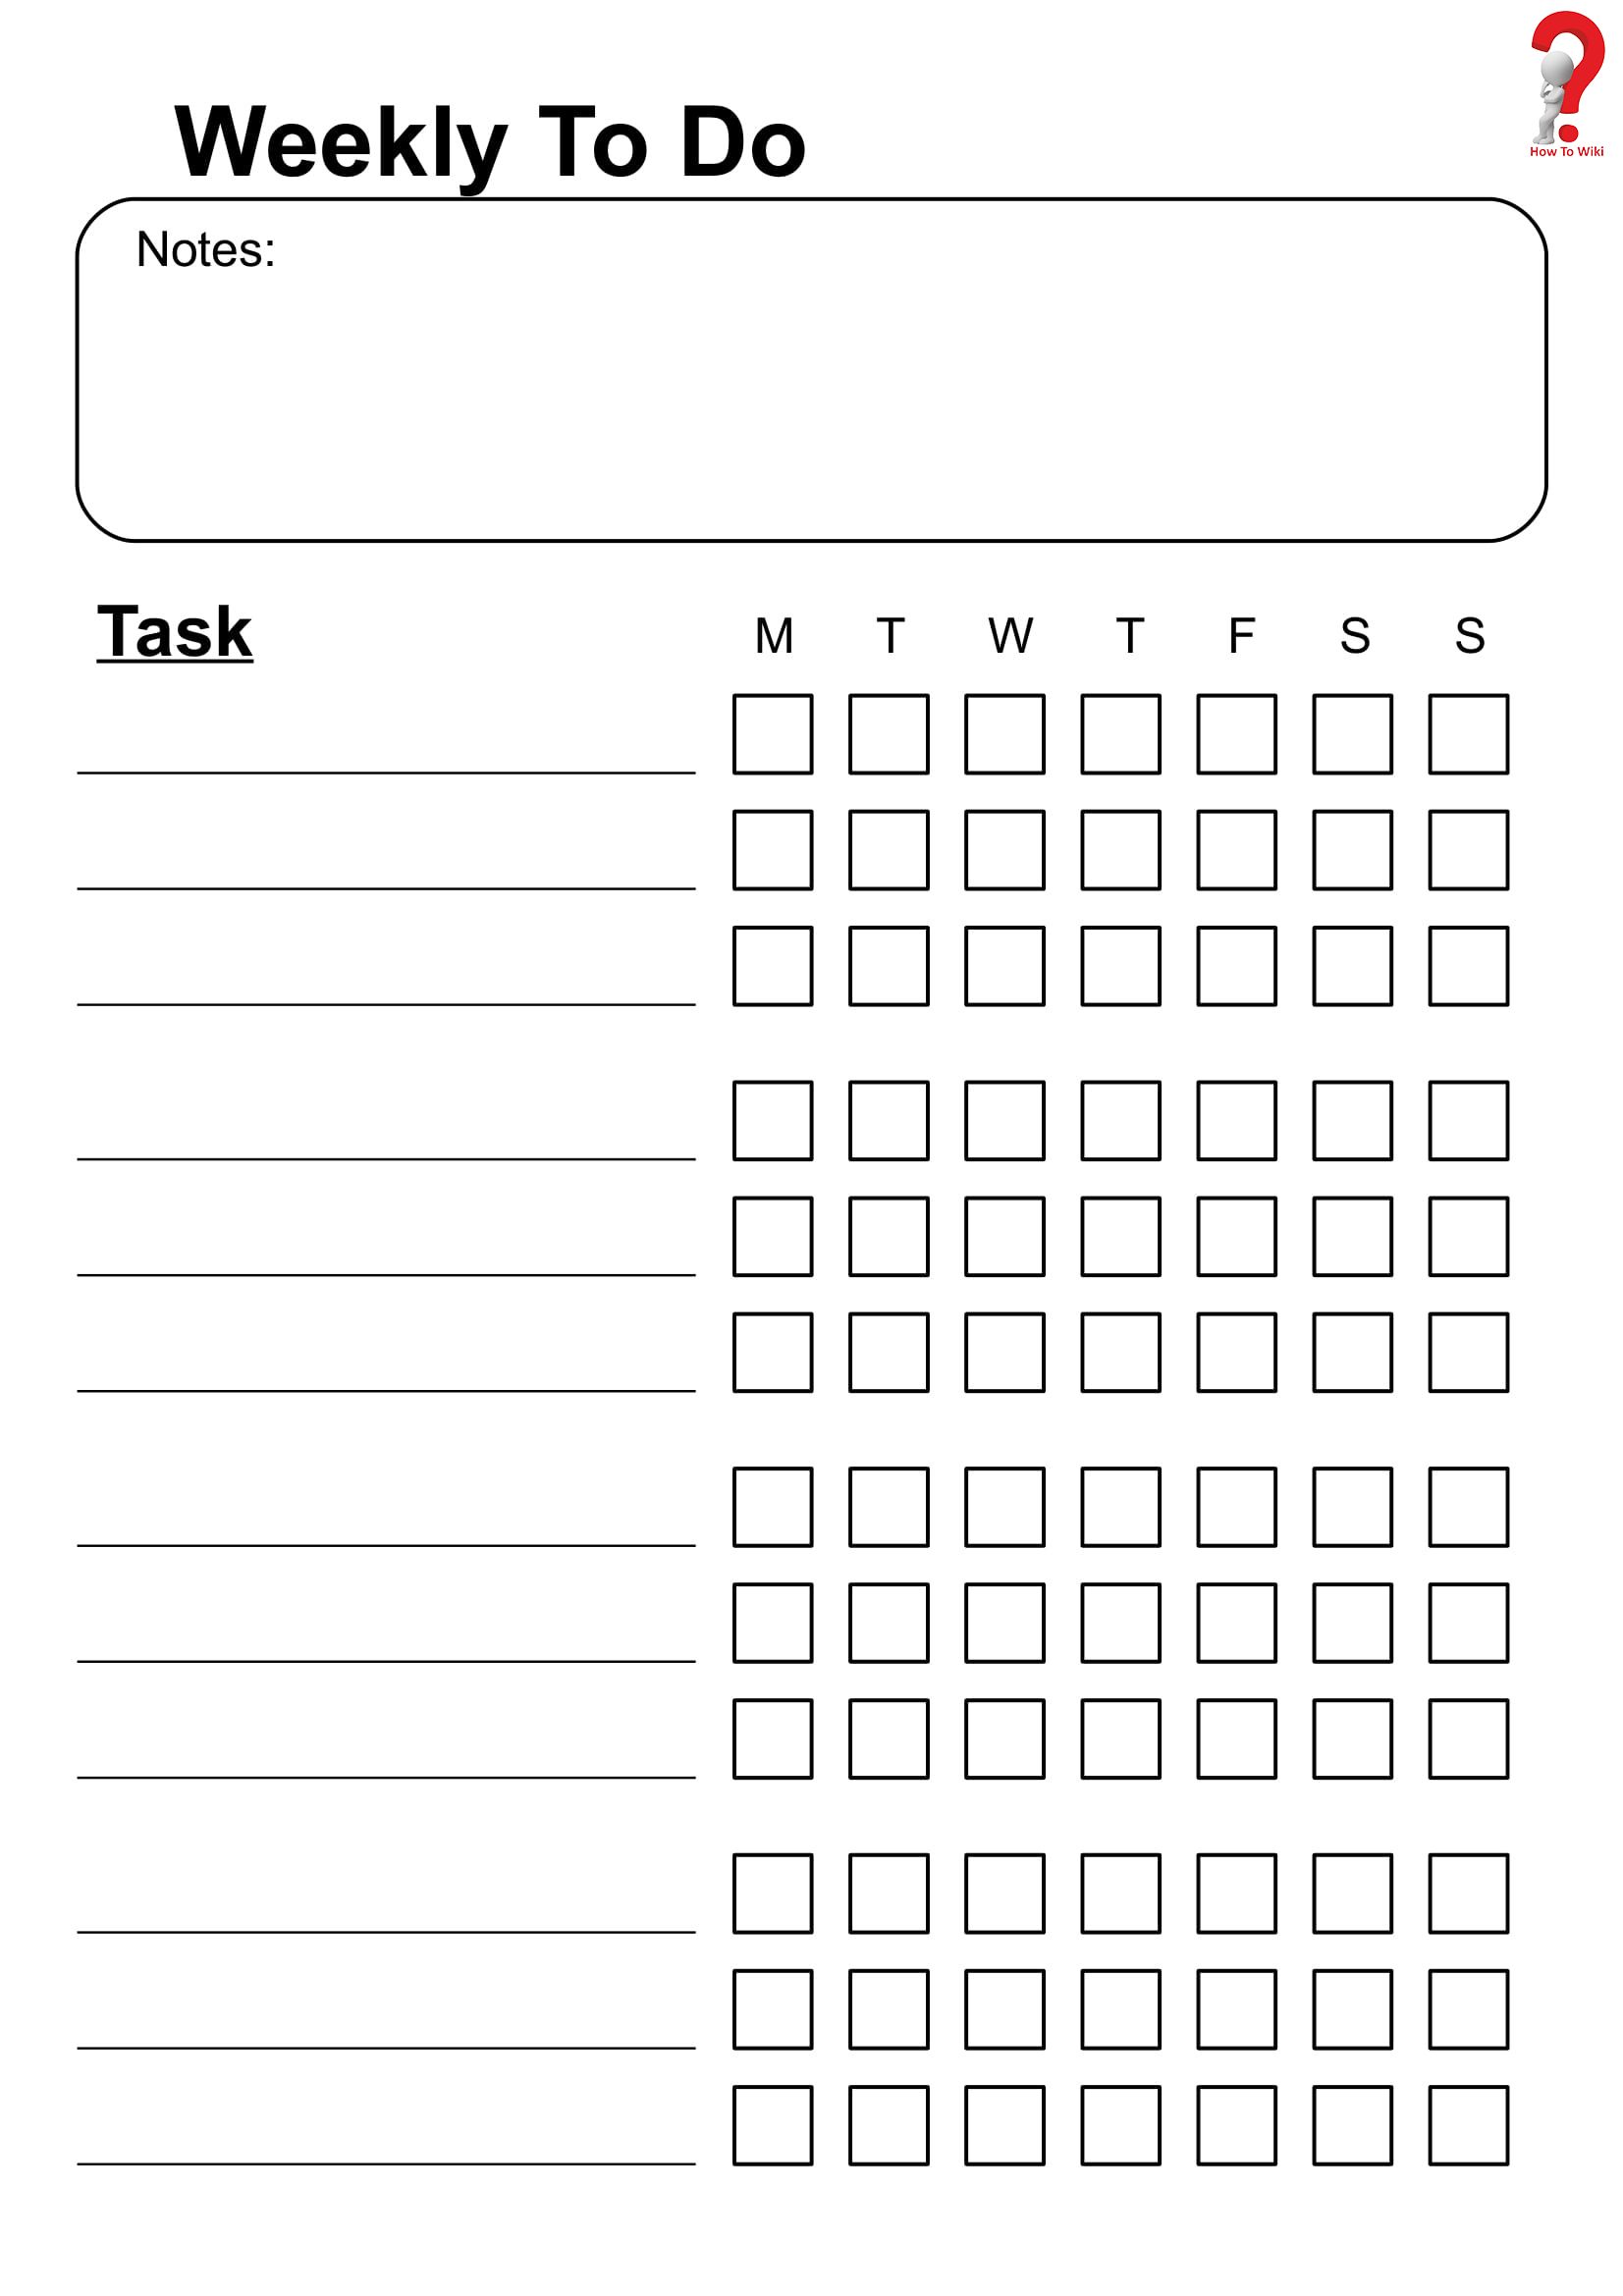 How To Schedule Your Week With Weekly To Do List Template